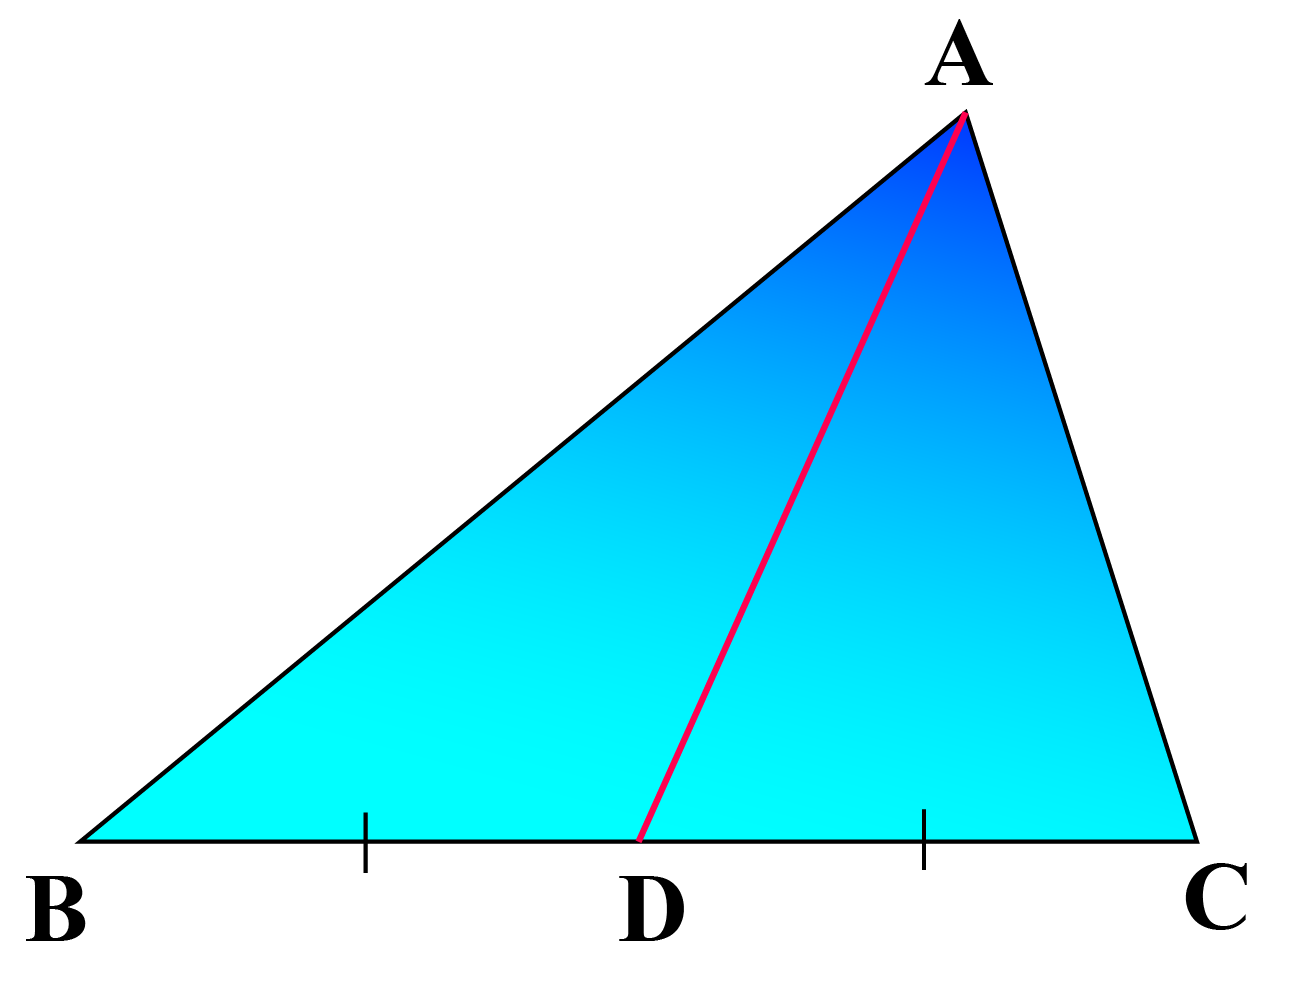 AD is the median of triangle ABC